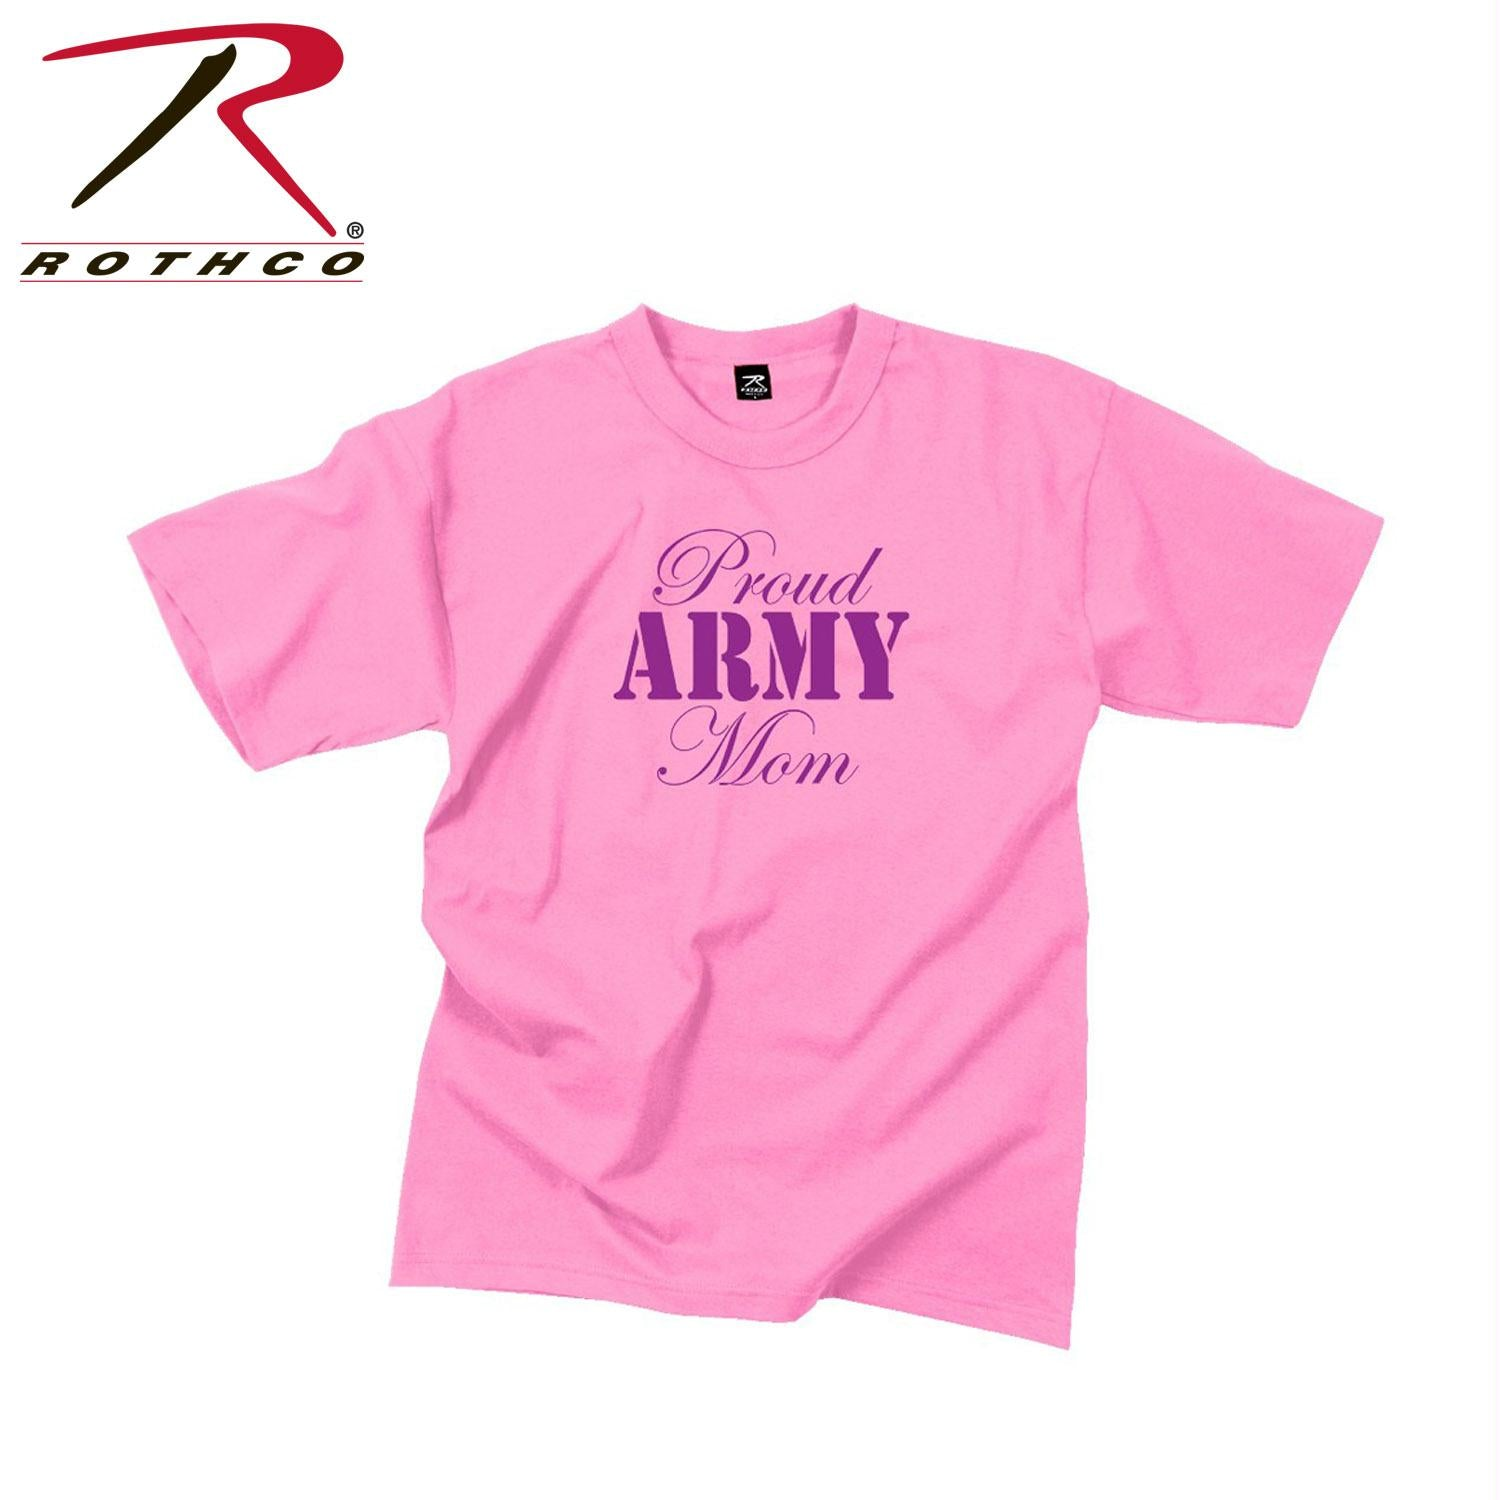 Rothco Proud Army Mom T-Shirt - S